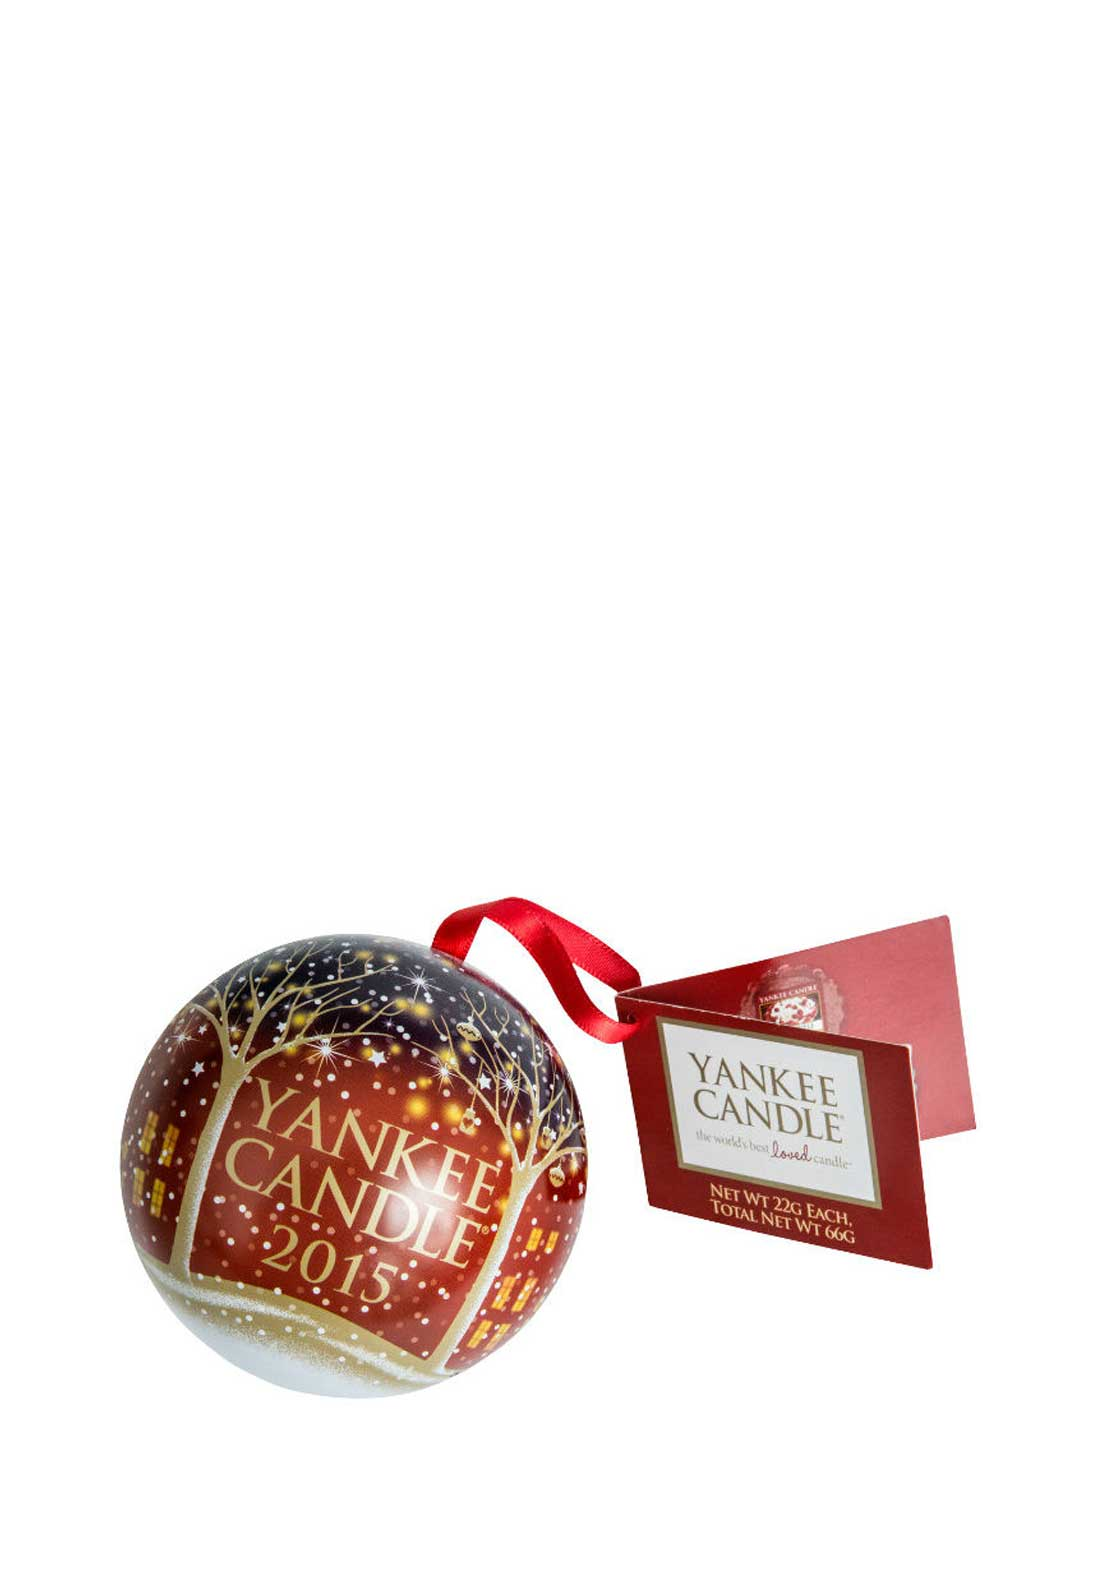 Yankee Candle Christmas 2015 Keepsake Bauble